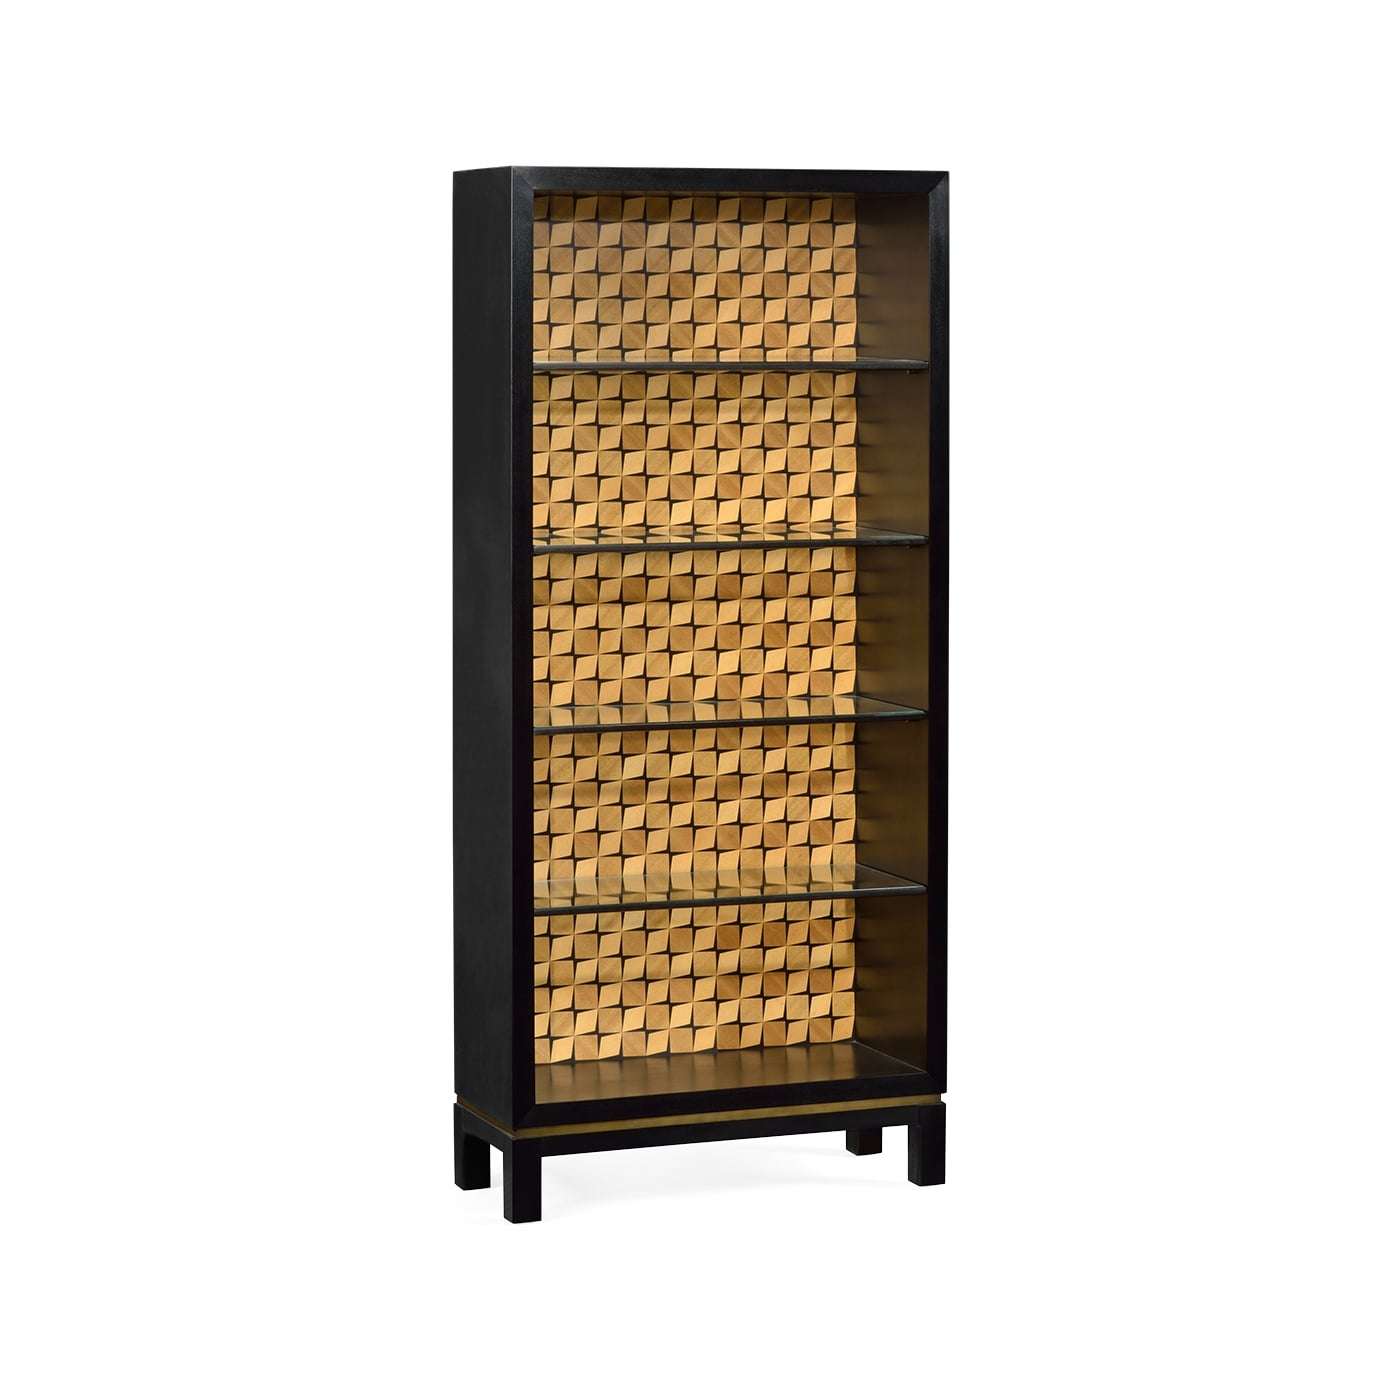 Designer 3d display cabinet bookcase swanky interiors for Furniture 3d design